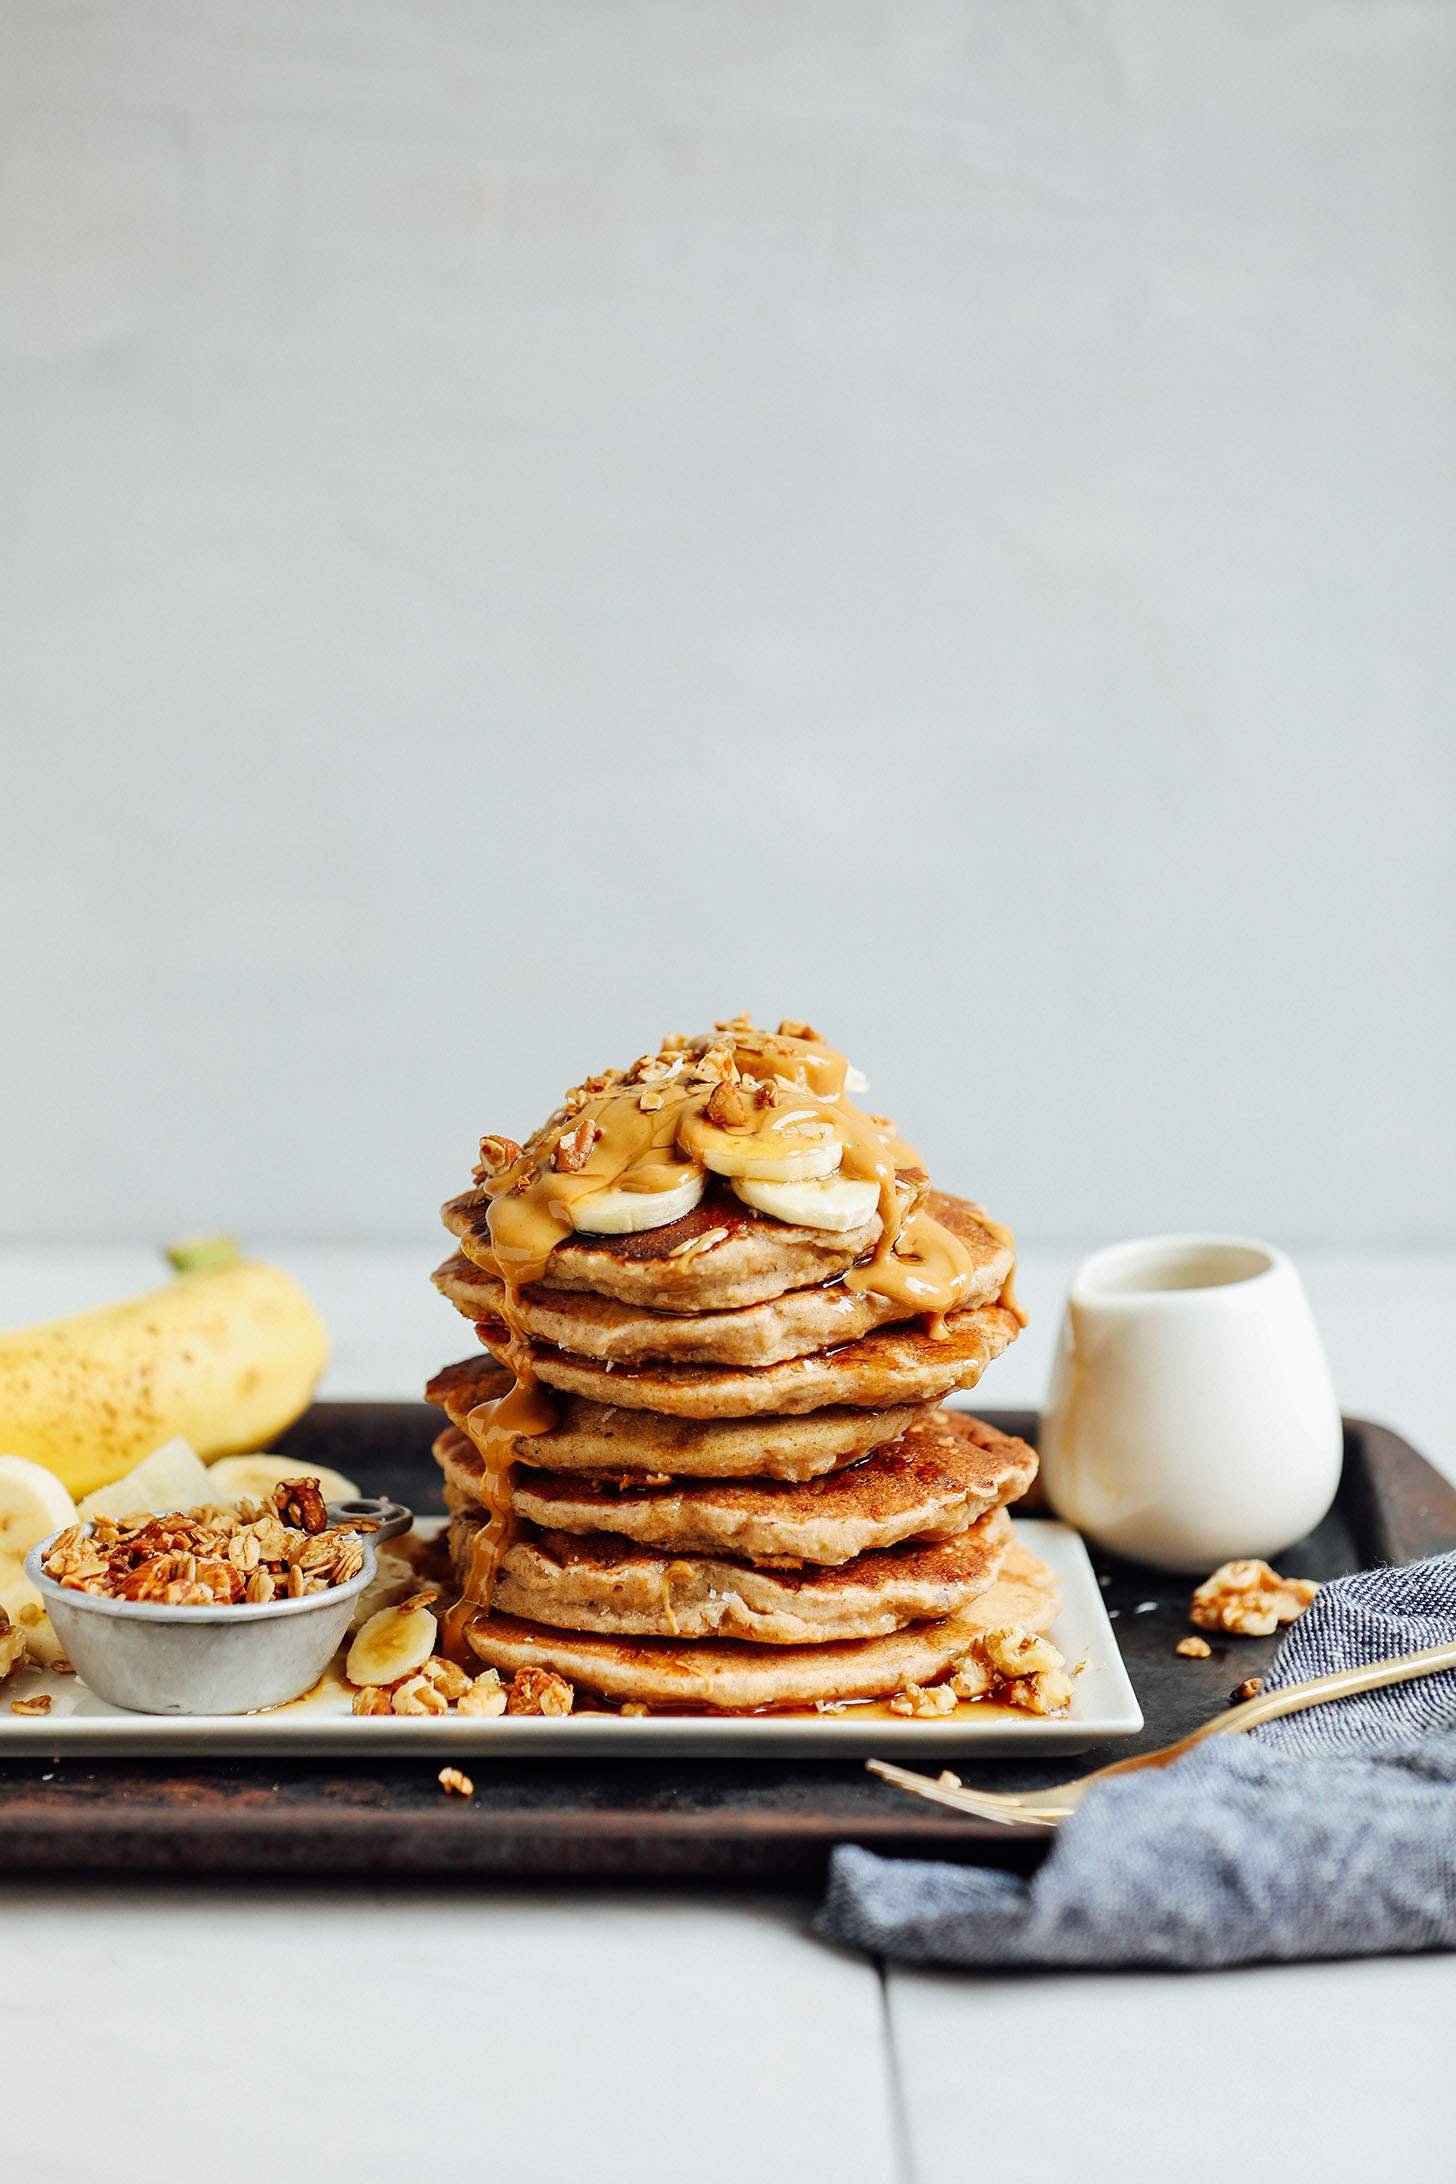 Stack of naturally sweetened gluten-free Banana Pancakes topped with fresh bananas, peanut butter, and walnuts